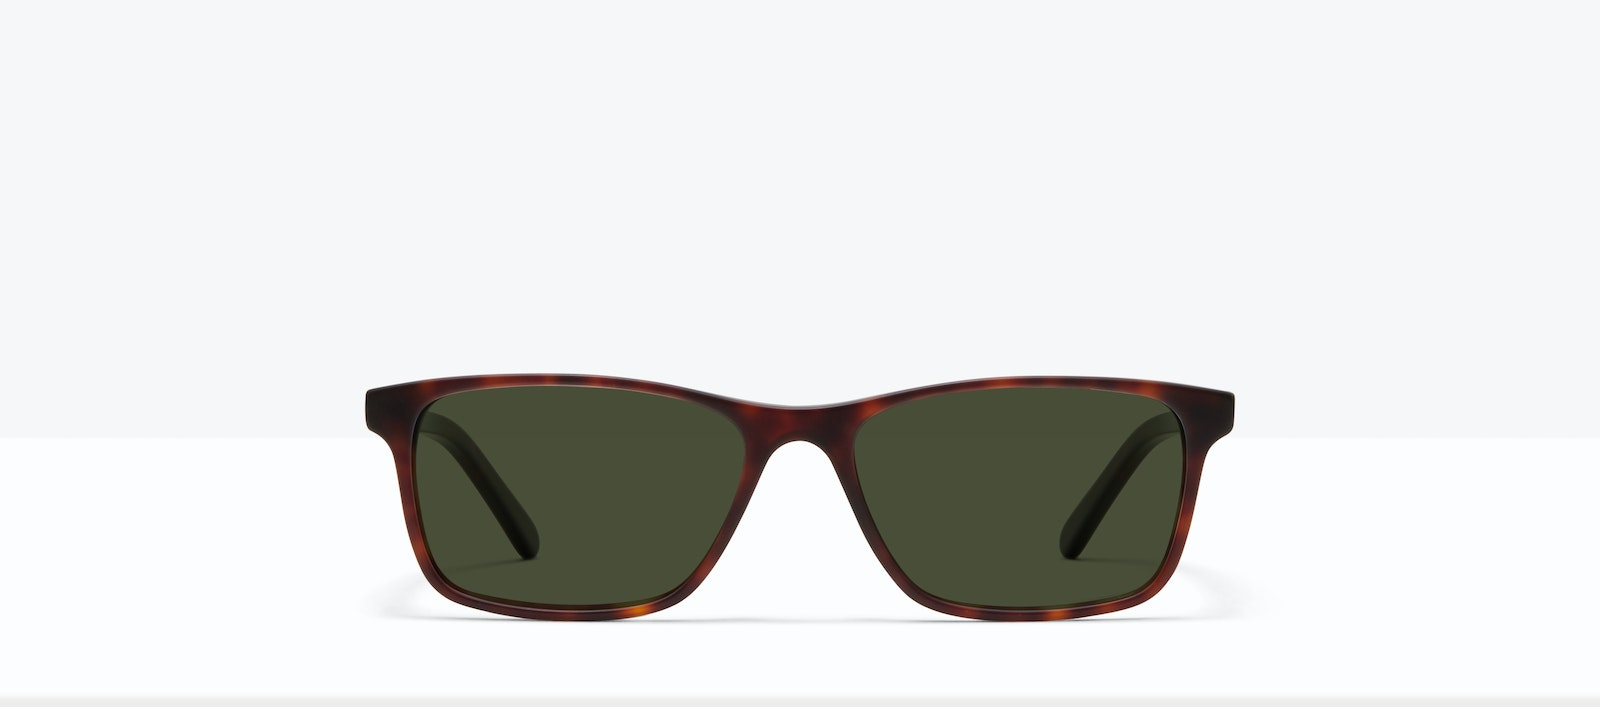 Affordable Fashion Glasses Rectangle Sunglasses Men Henri XL Matte Tort Front